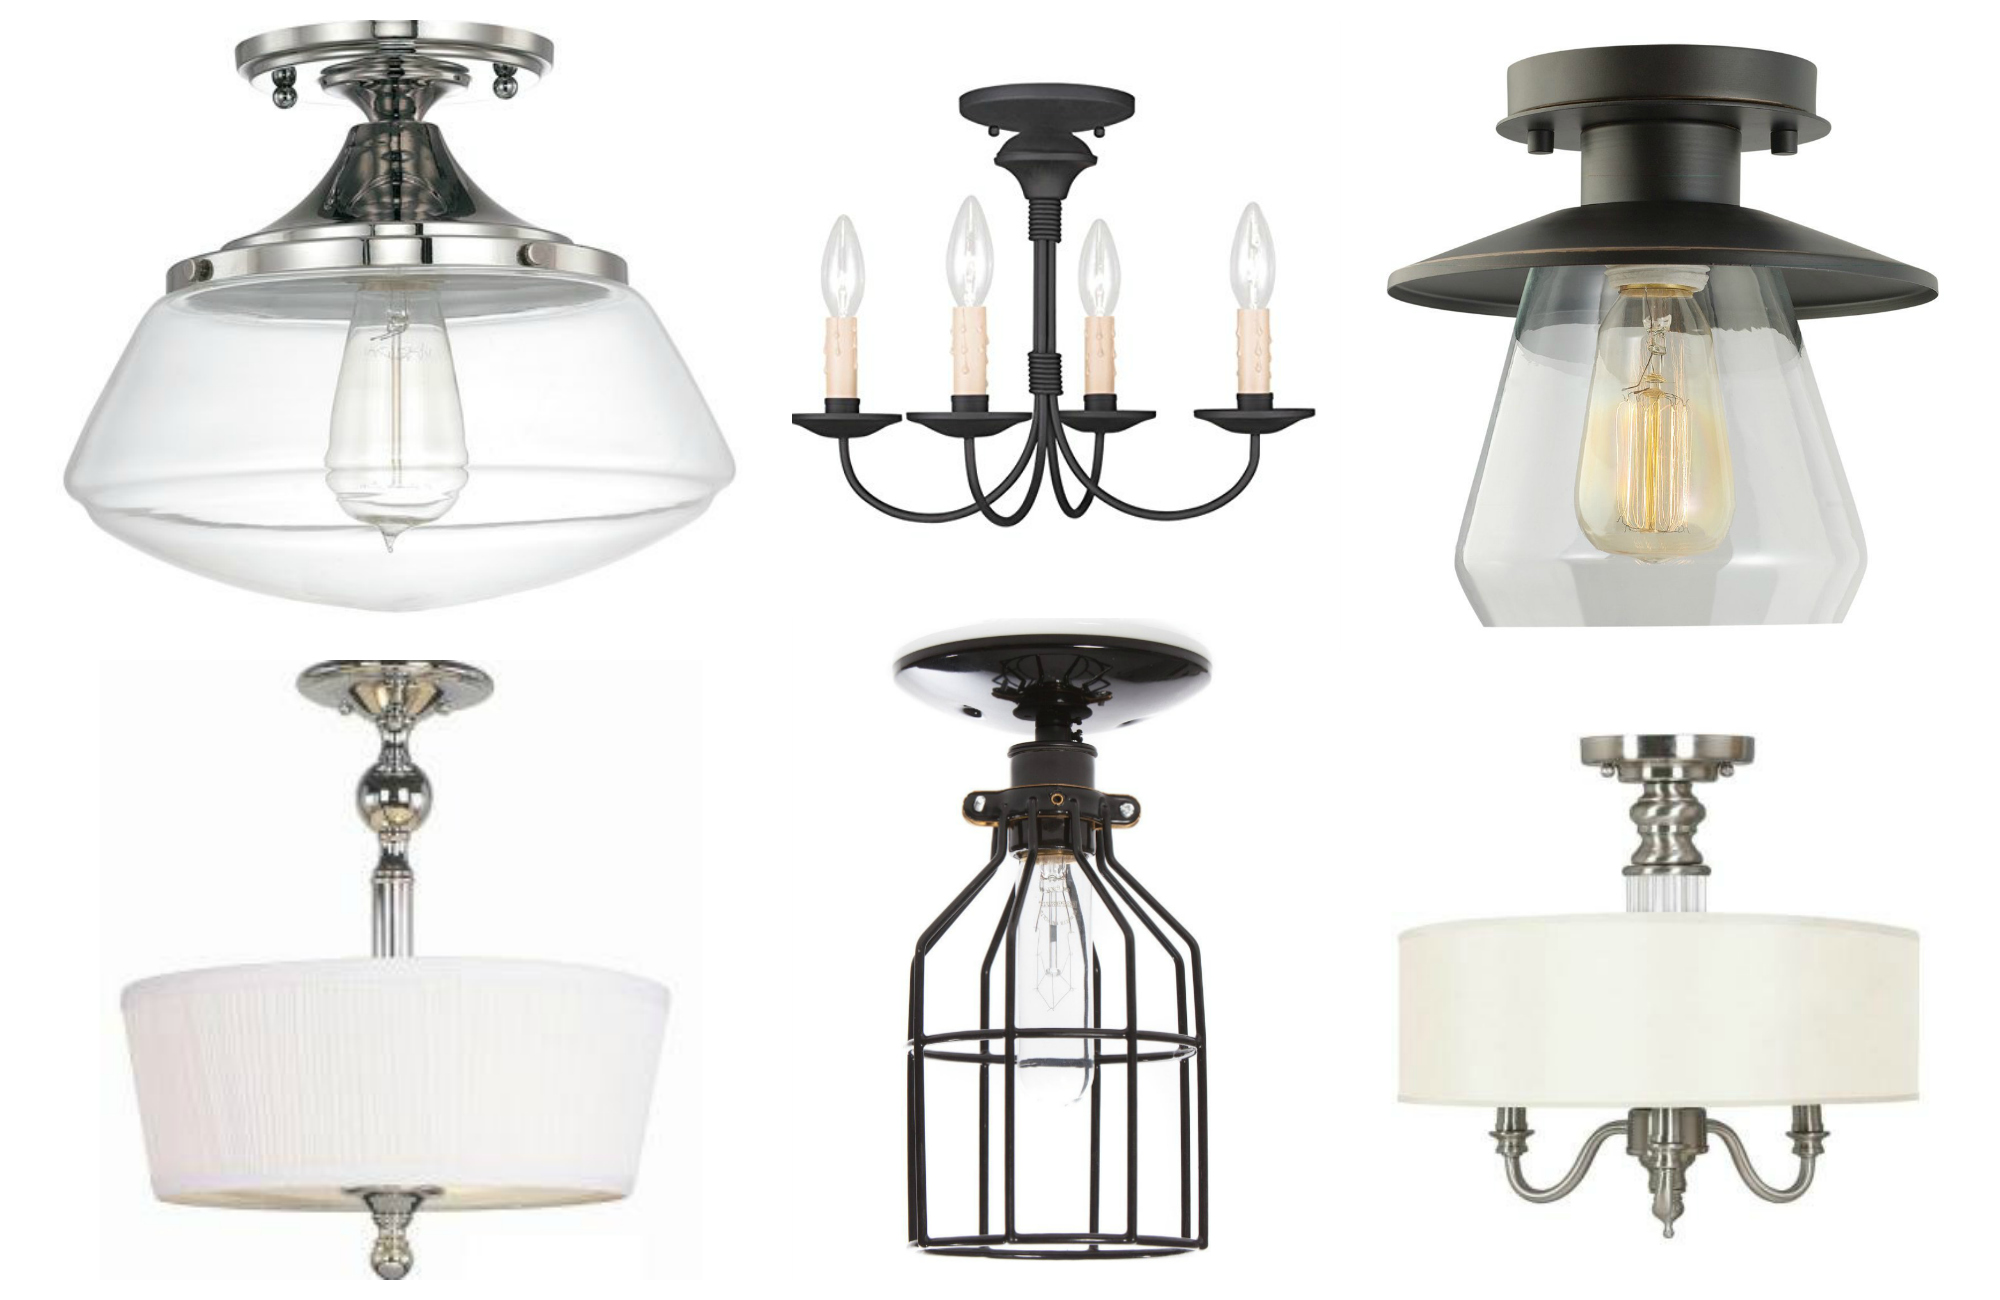 These Gorgeous High Style Ceiling Lights Will Dress Up a Low Ceiling ...